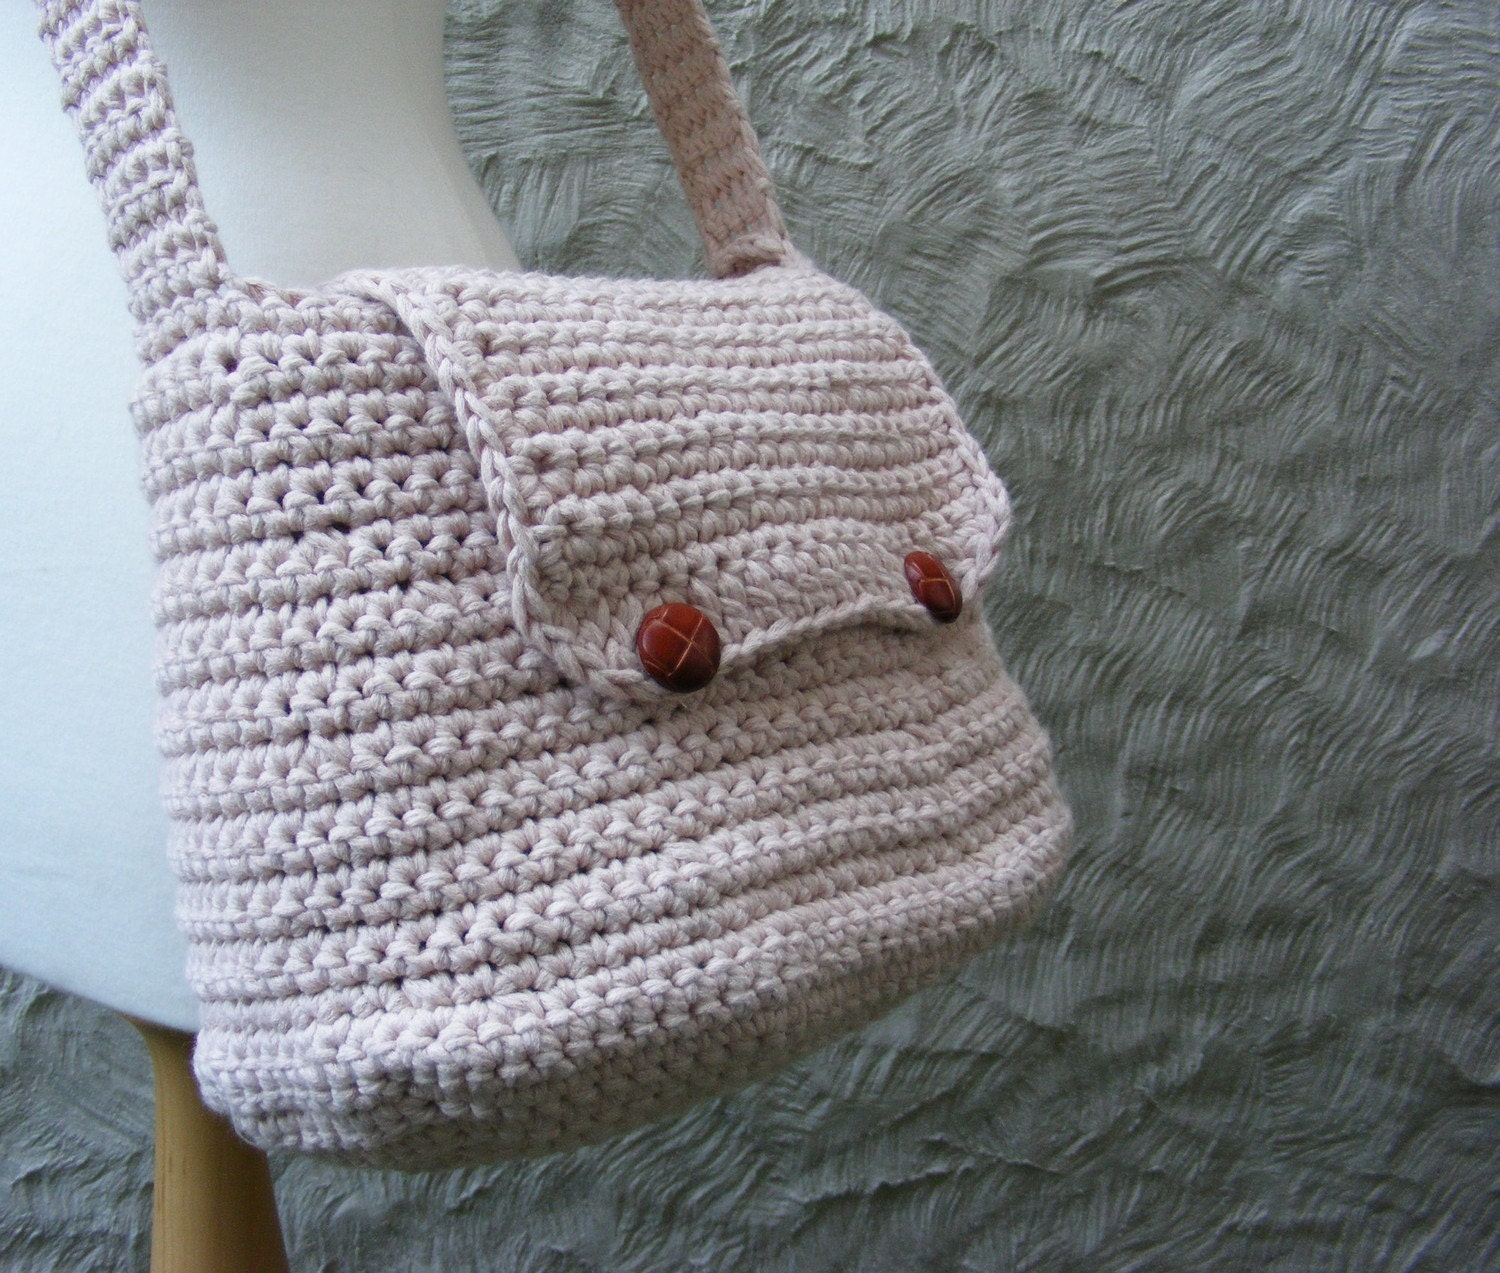 Crochet Purses And Bags : purse patterns free crochet bag and purse patterns little eyelash bag ...